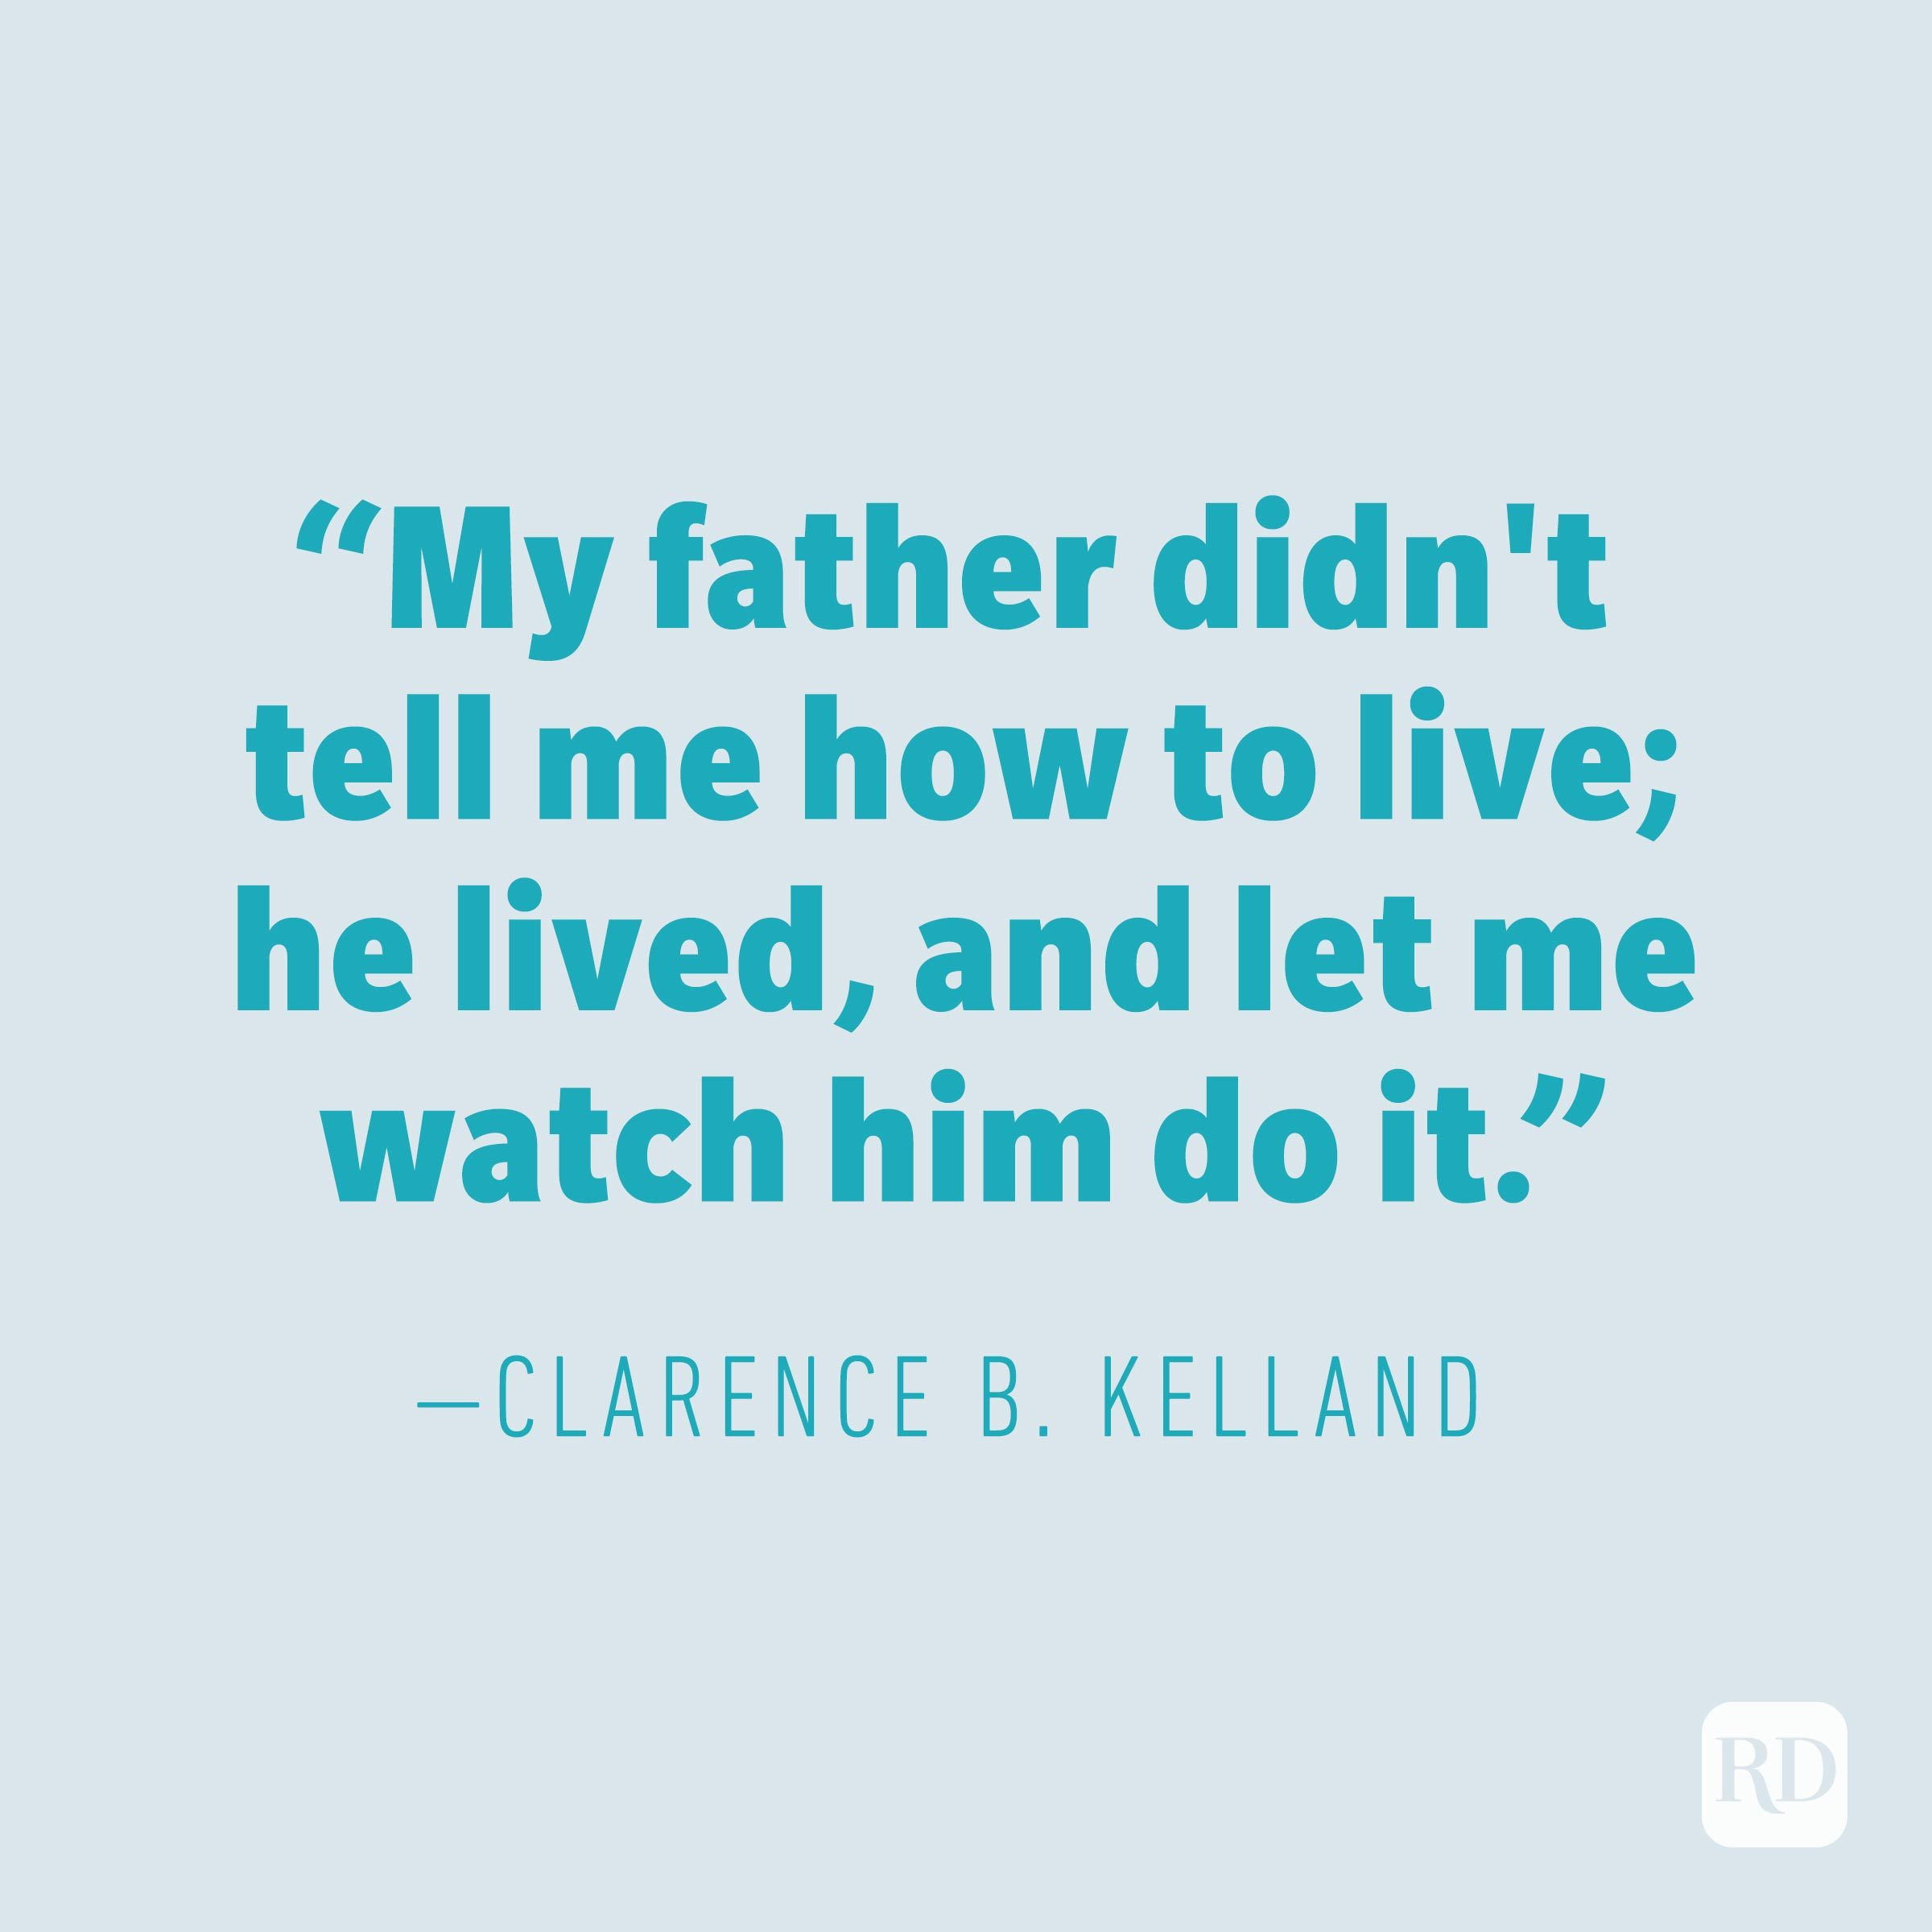 """My father didn't tell me how to live; he lived, and let me watch him do it."" —CLARENCE B. KELLAND"